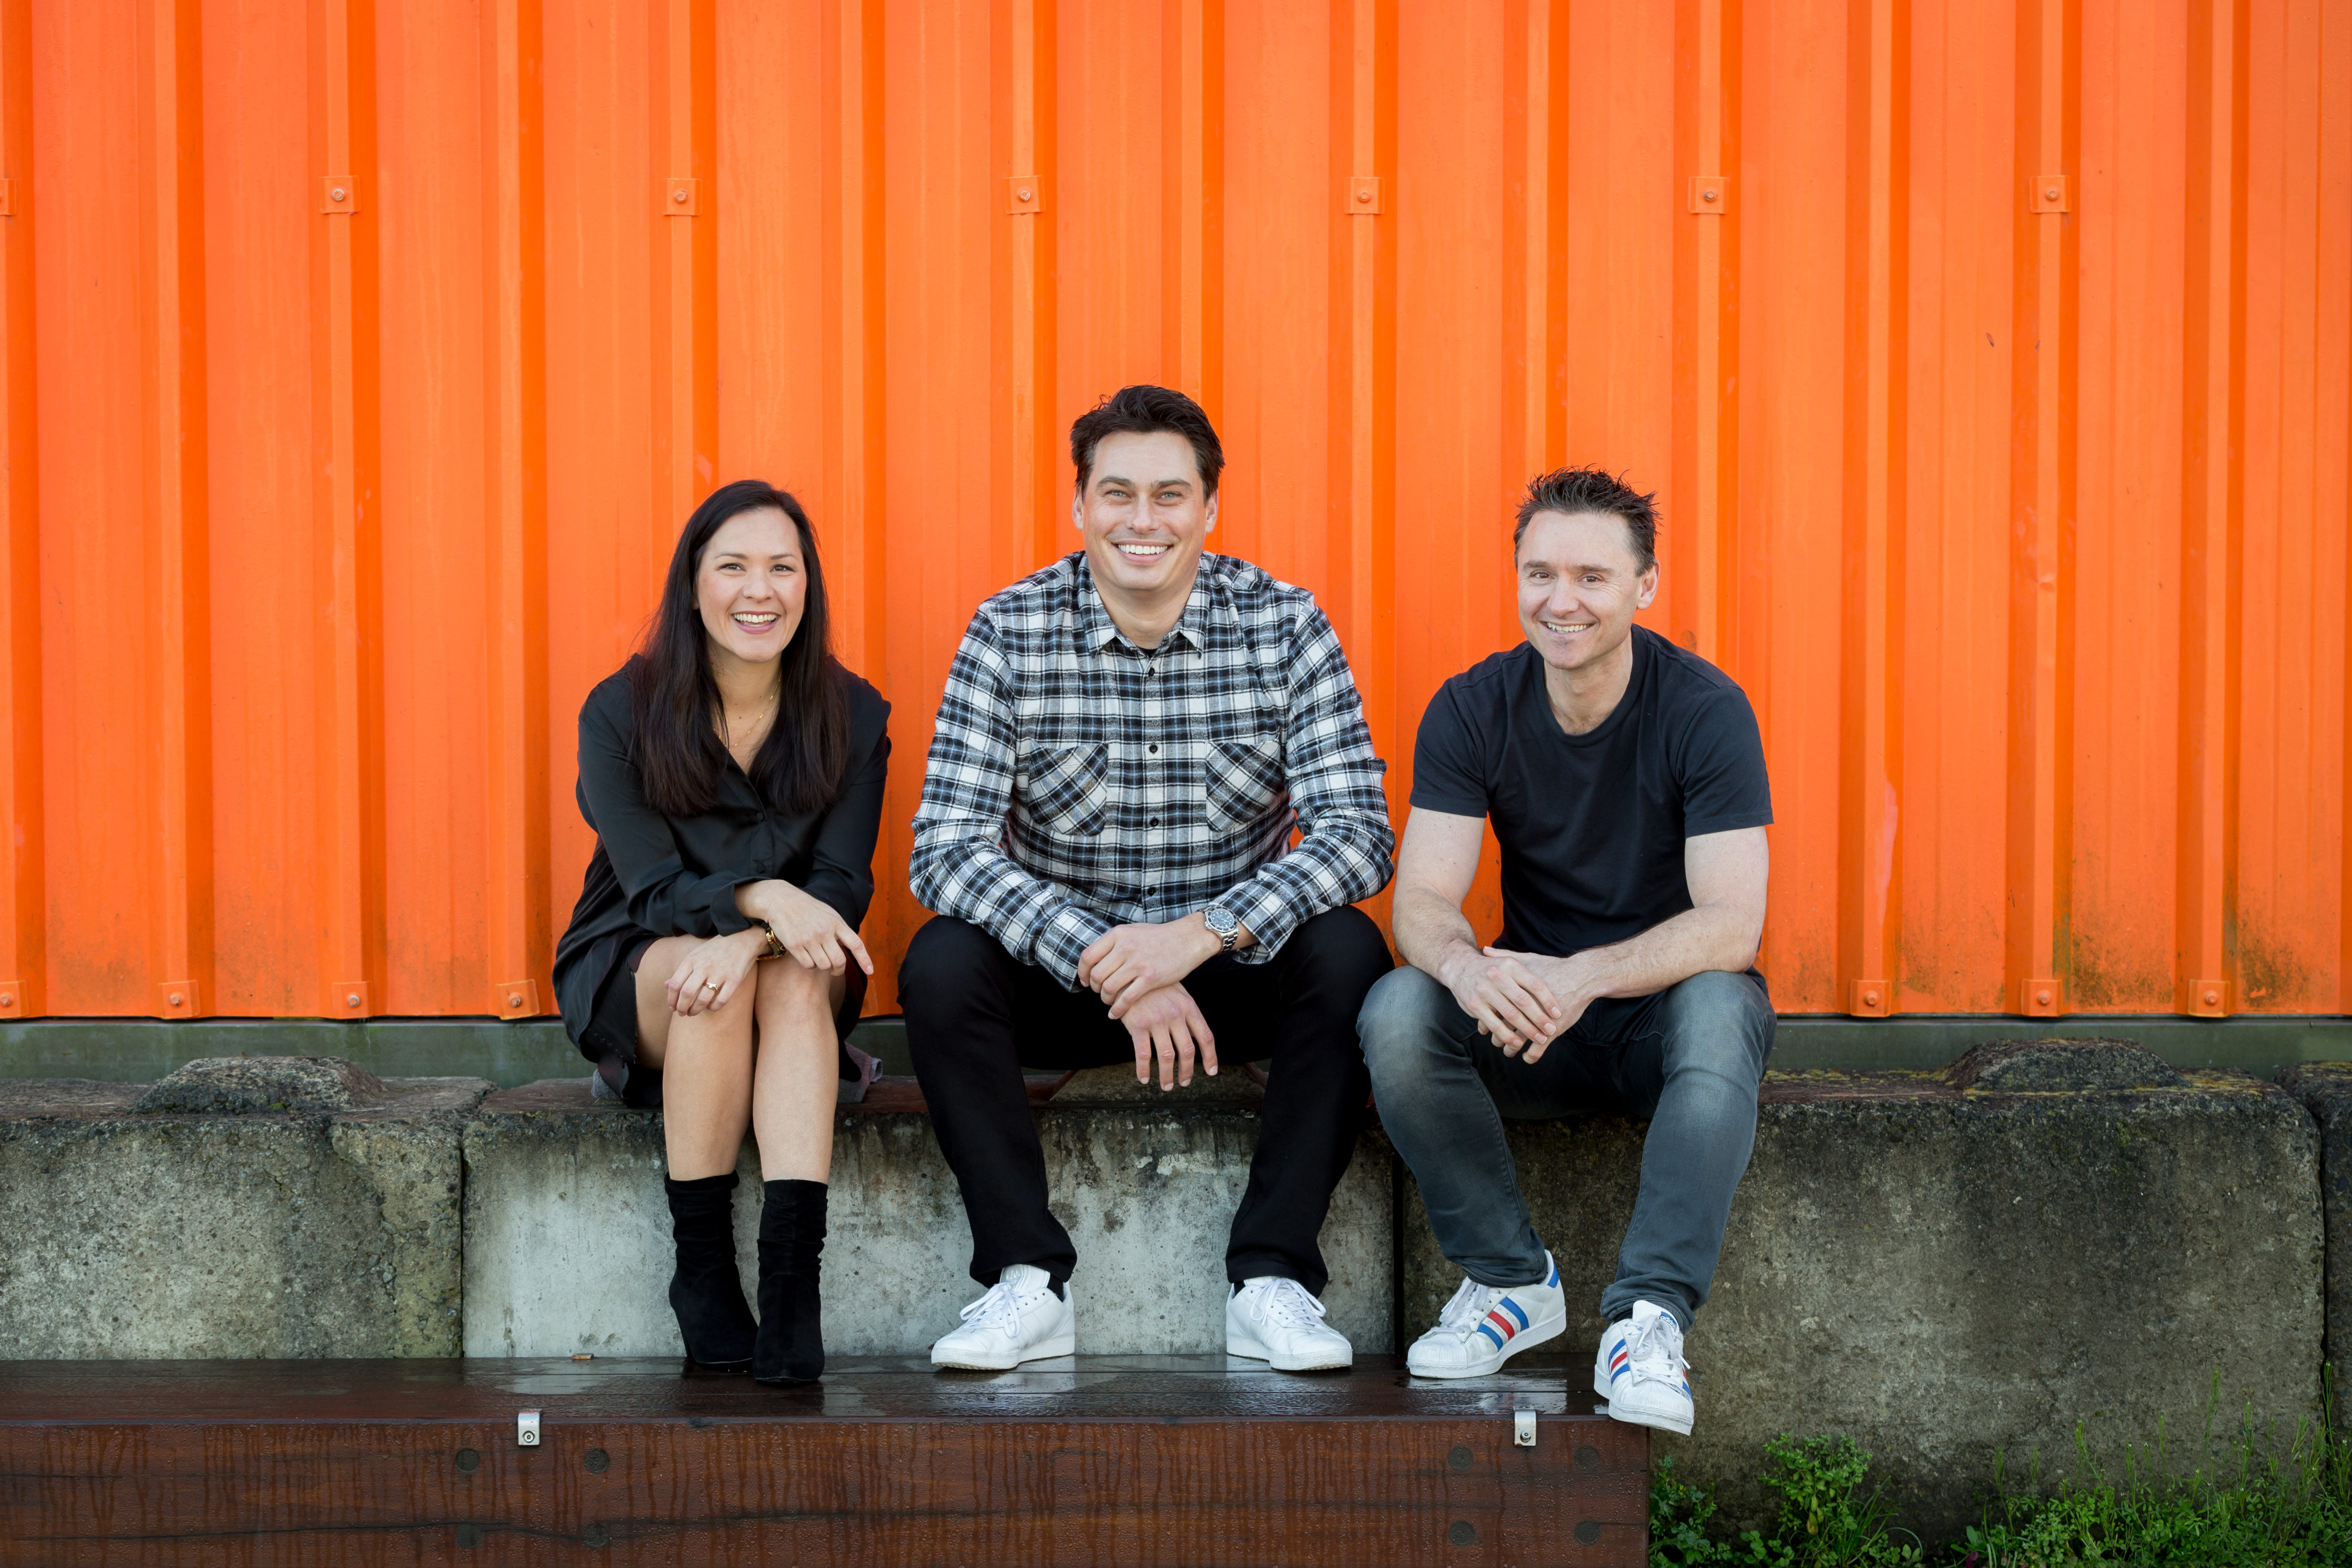 Sneakers Digital expands to full-service media offering